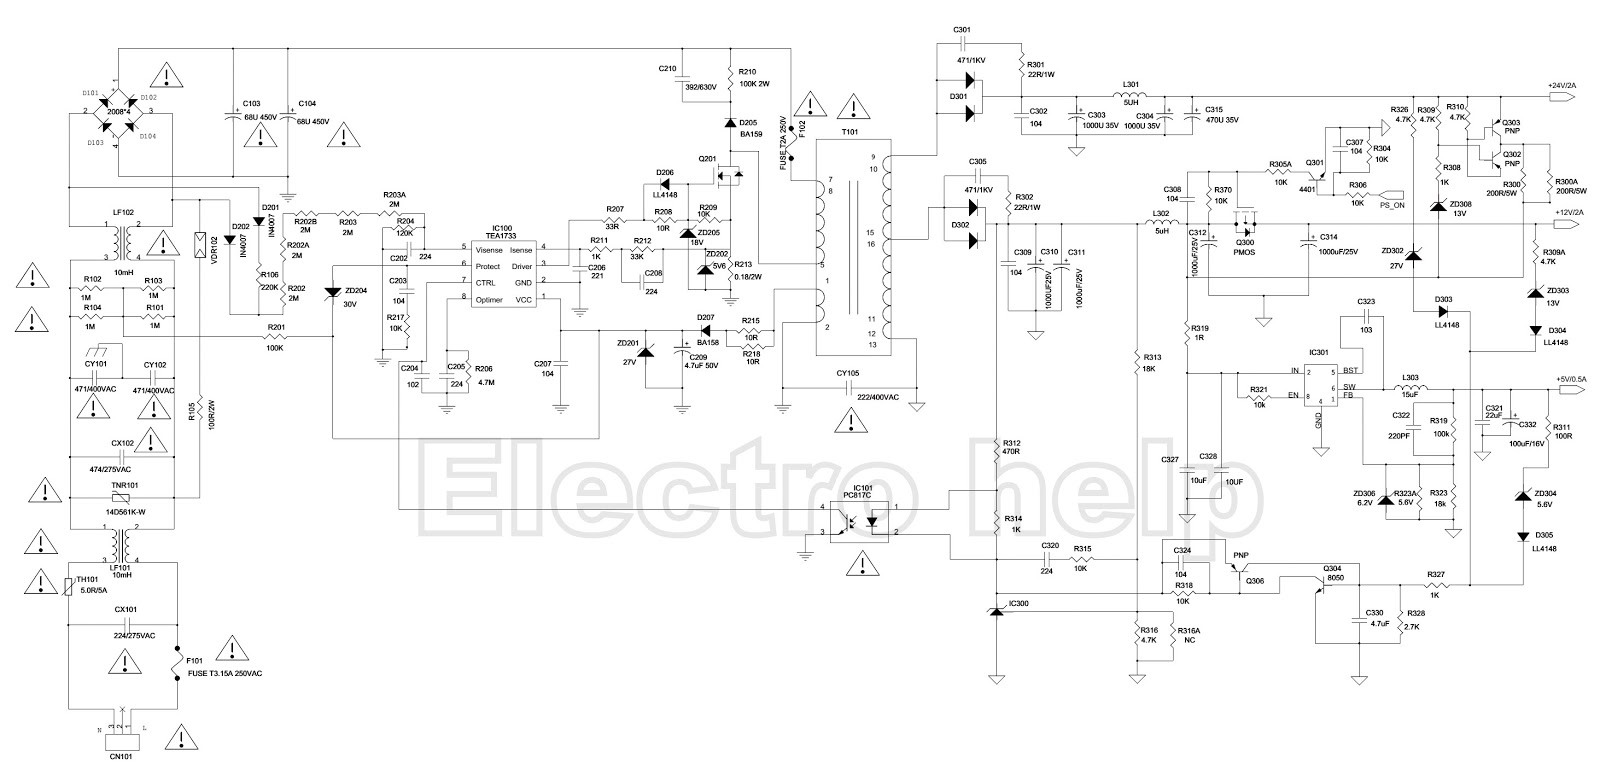 Multiplexing For A 7 Year Old furthermore Electronic Dice Kit 2061 besides Solid State Lighting Gan Leds And Lasers Presentation together with Ac Dimmer Repair moreover Ic 4017 Decade Counter. on led light schematic